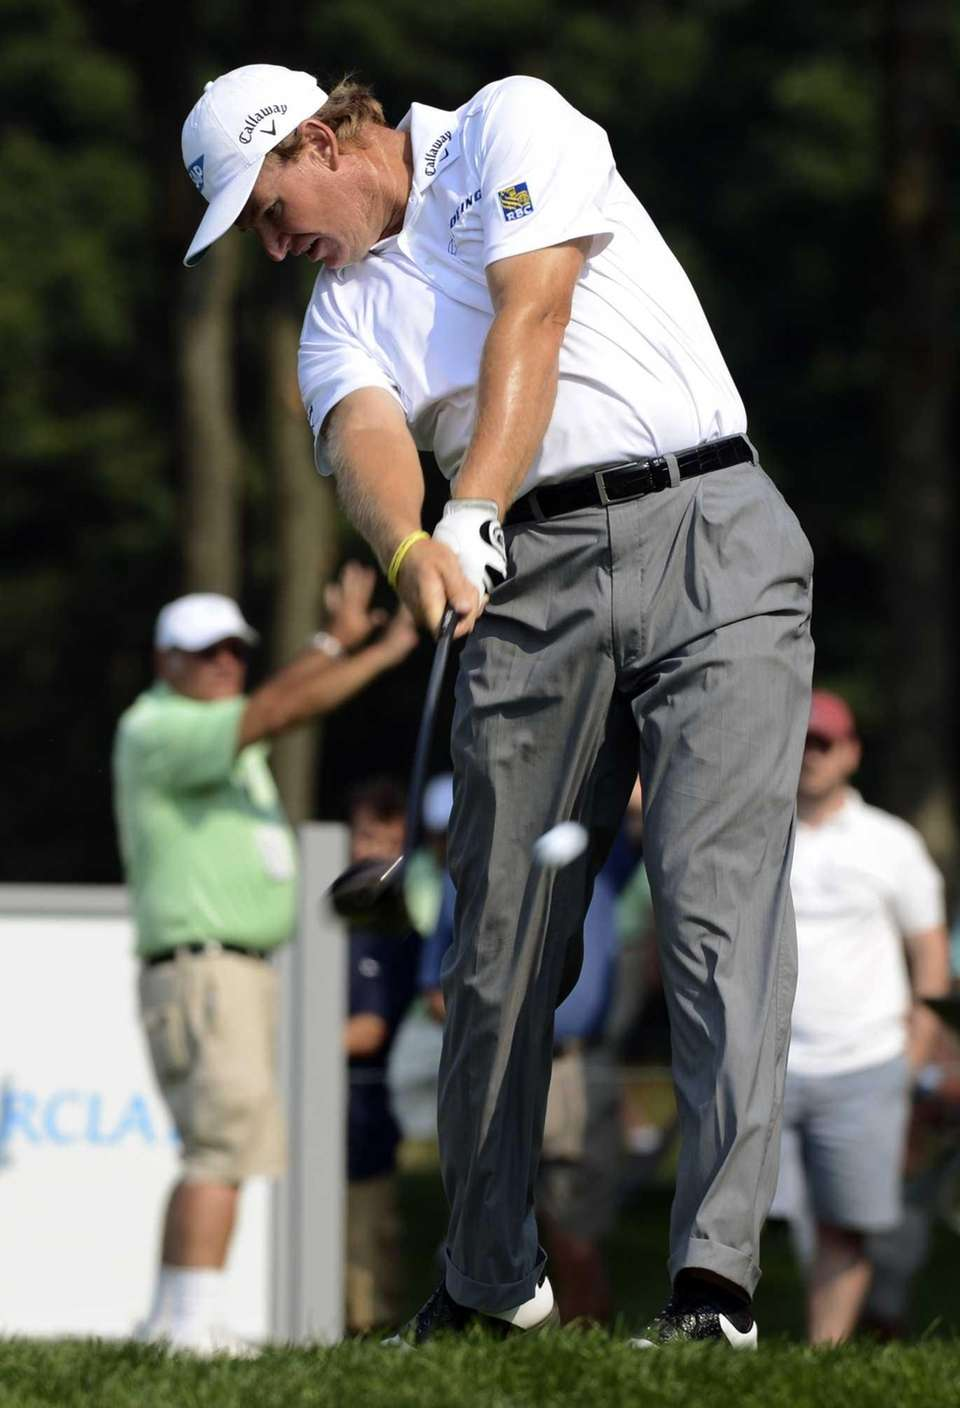 Ernie Els, of South Africa, hits his drive